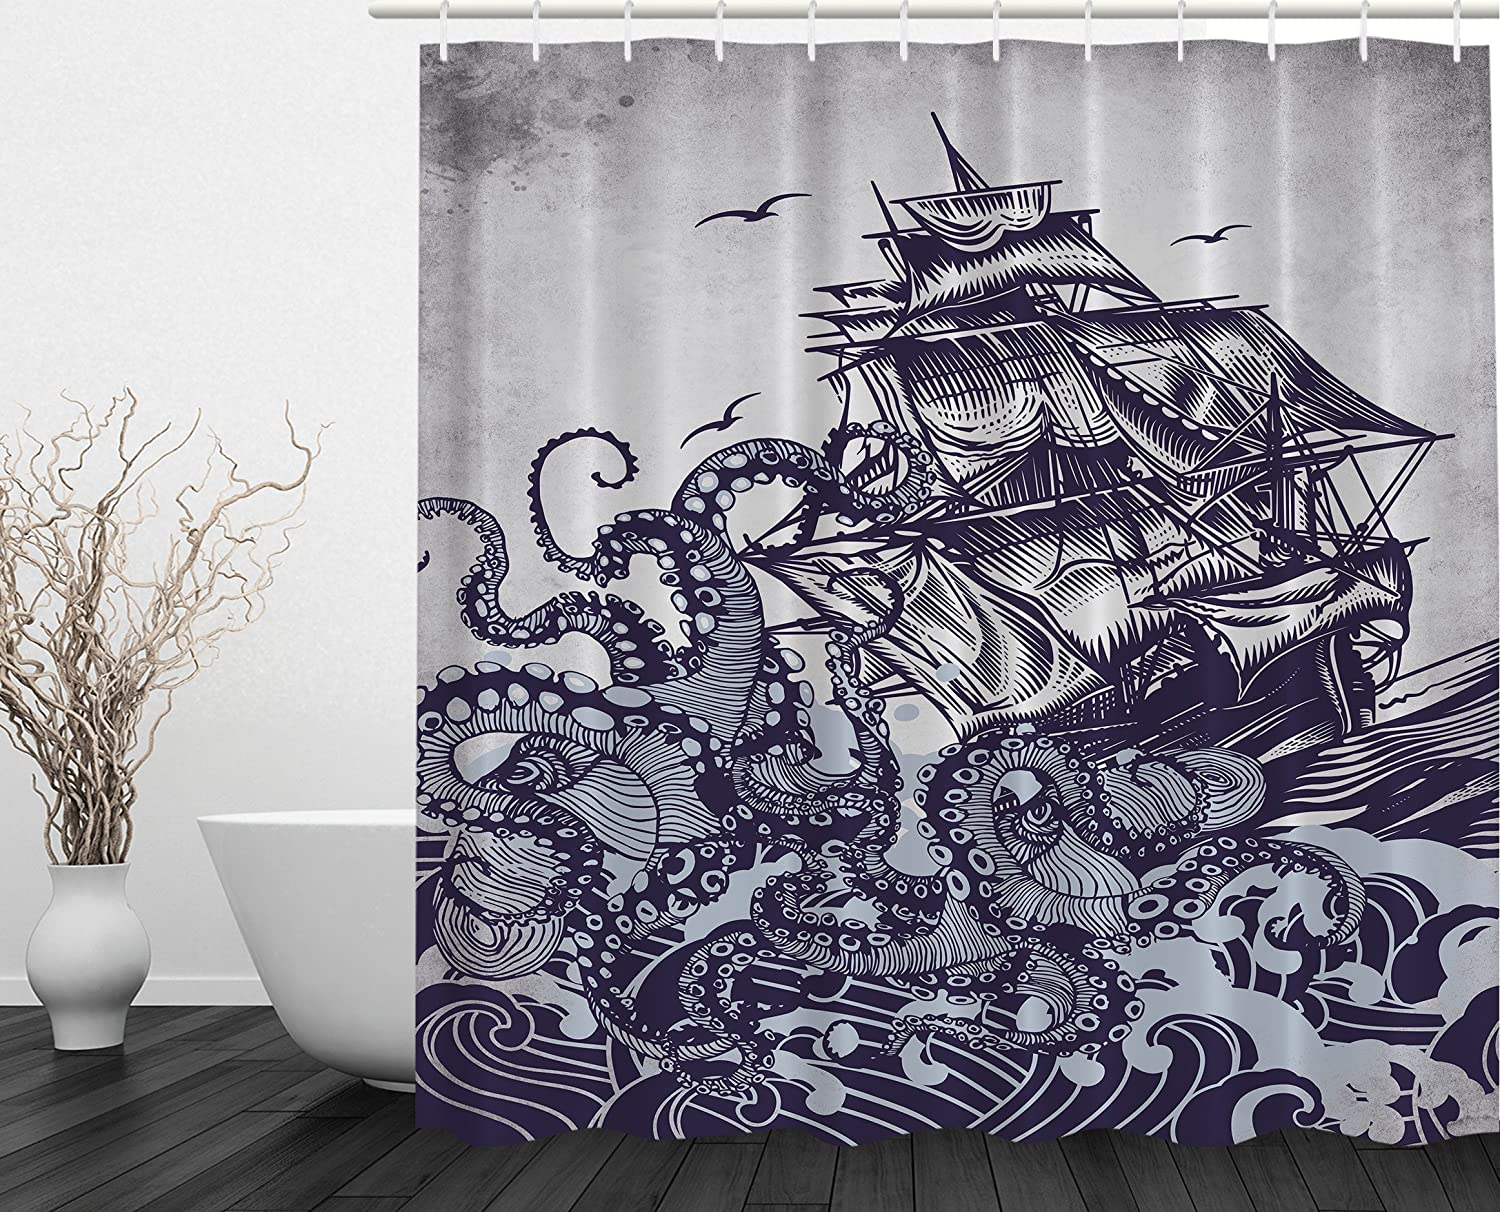 Bathroom decoration shower curtain - Sail Boat Waves And Octopus Old Look Home Textile European Style Bathroom Decoration Luxurious Cozy Lovely Decor Pleasing Peculiar By Better Curtains